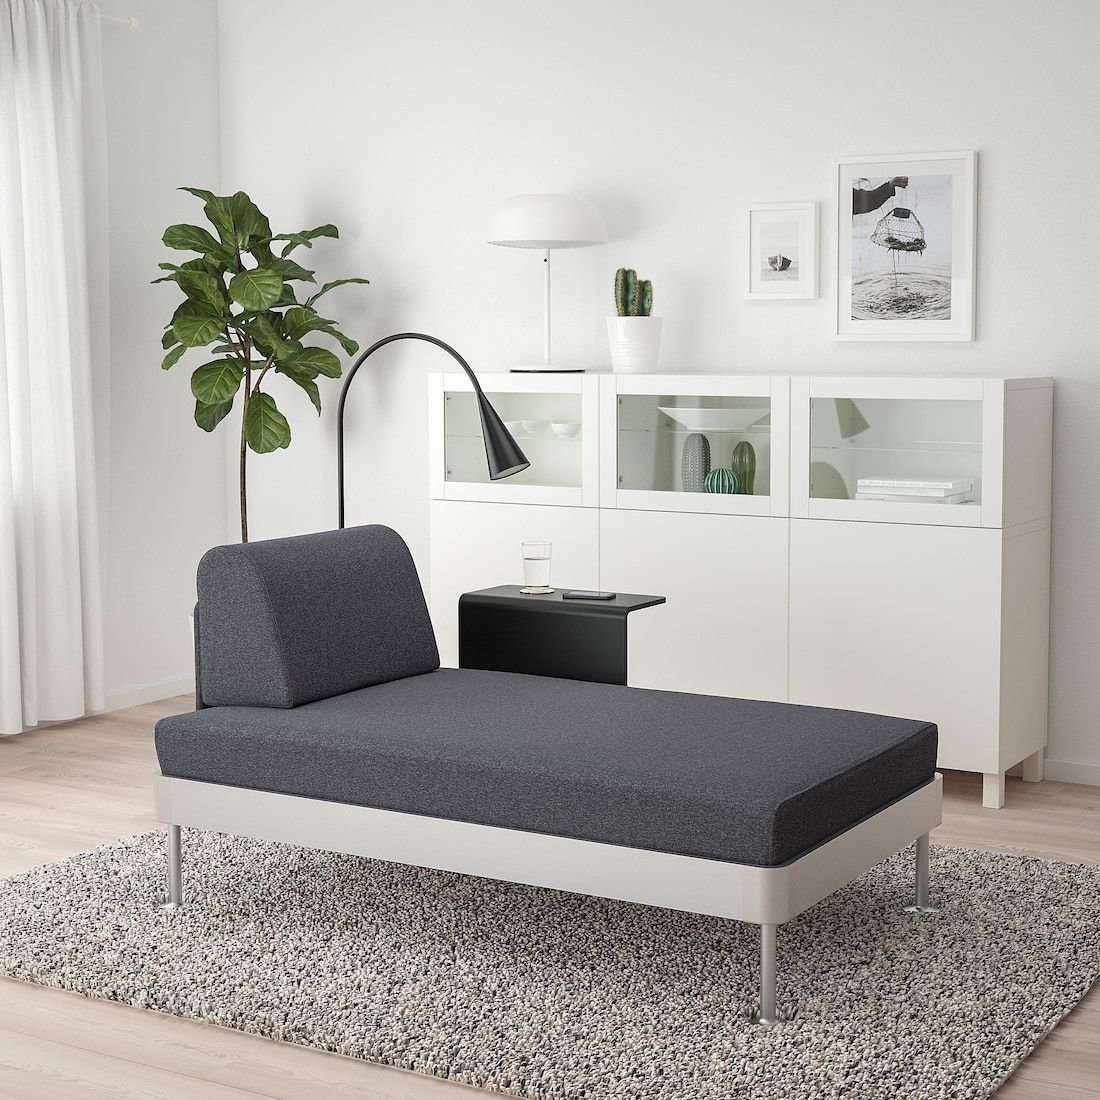 Delaktig Chaise With Side Table And Lamp Gunnared Medium Gray Ikea Chaise Ikea Home Furnishings